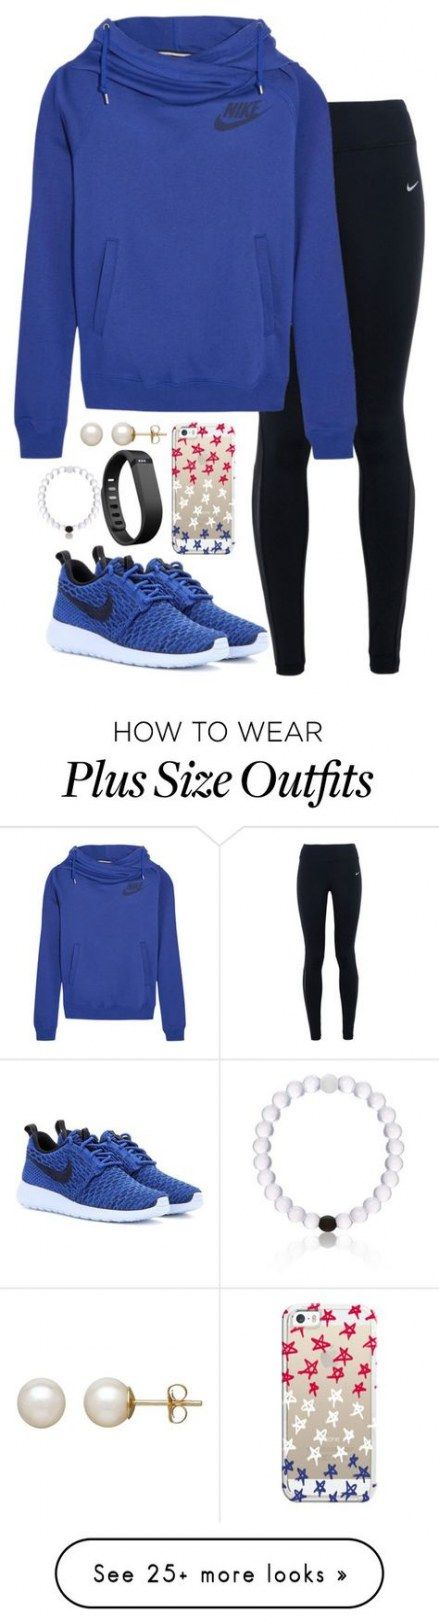 Fitness clothes shoes sports 39+ ideas for 2019 #fitness #clothes